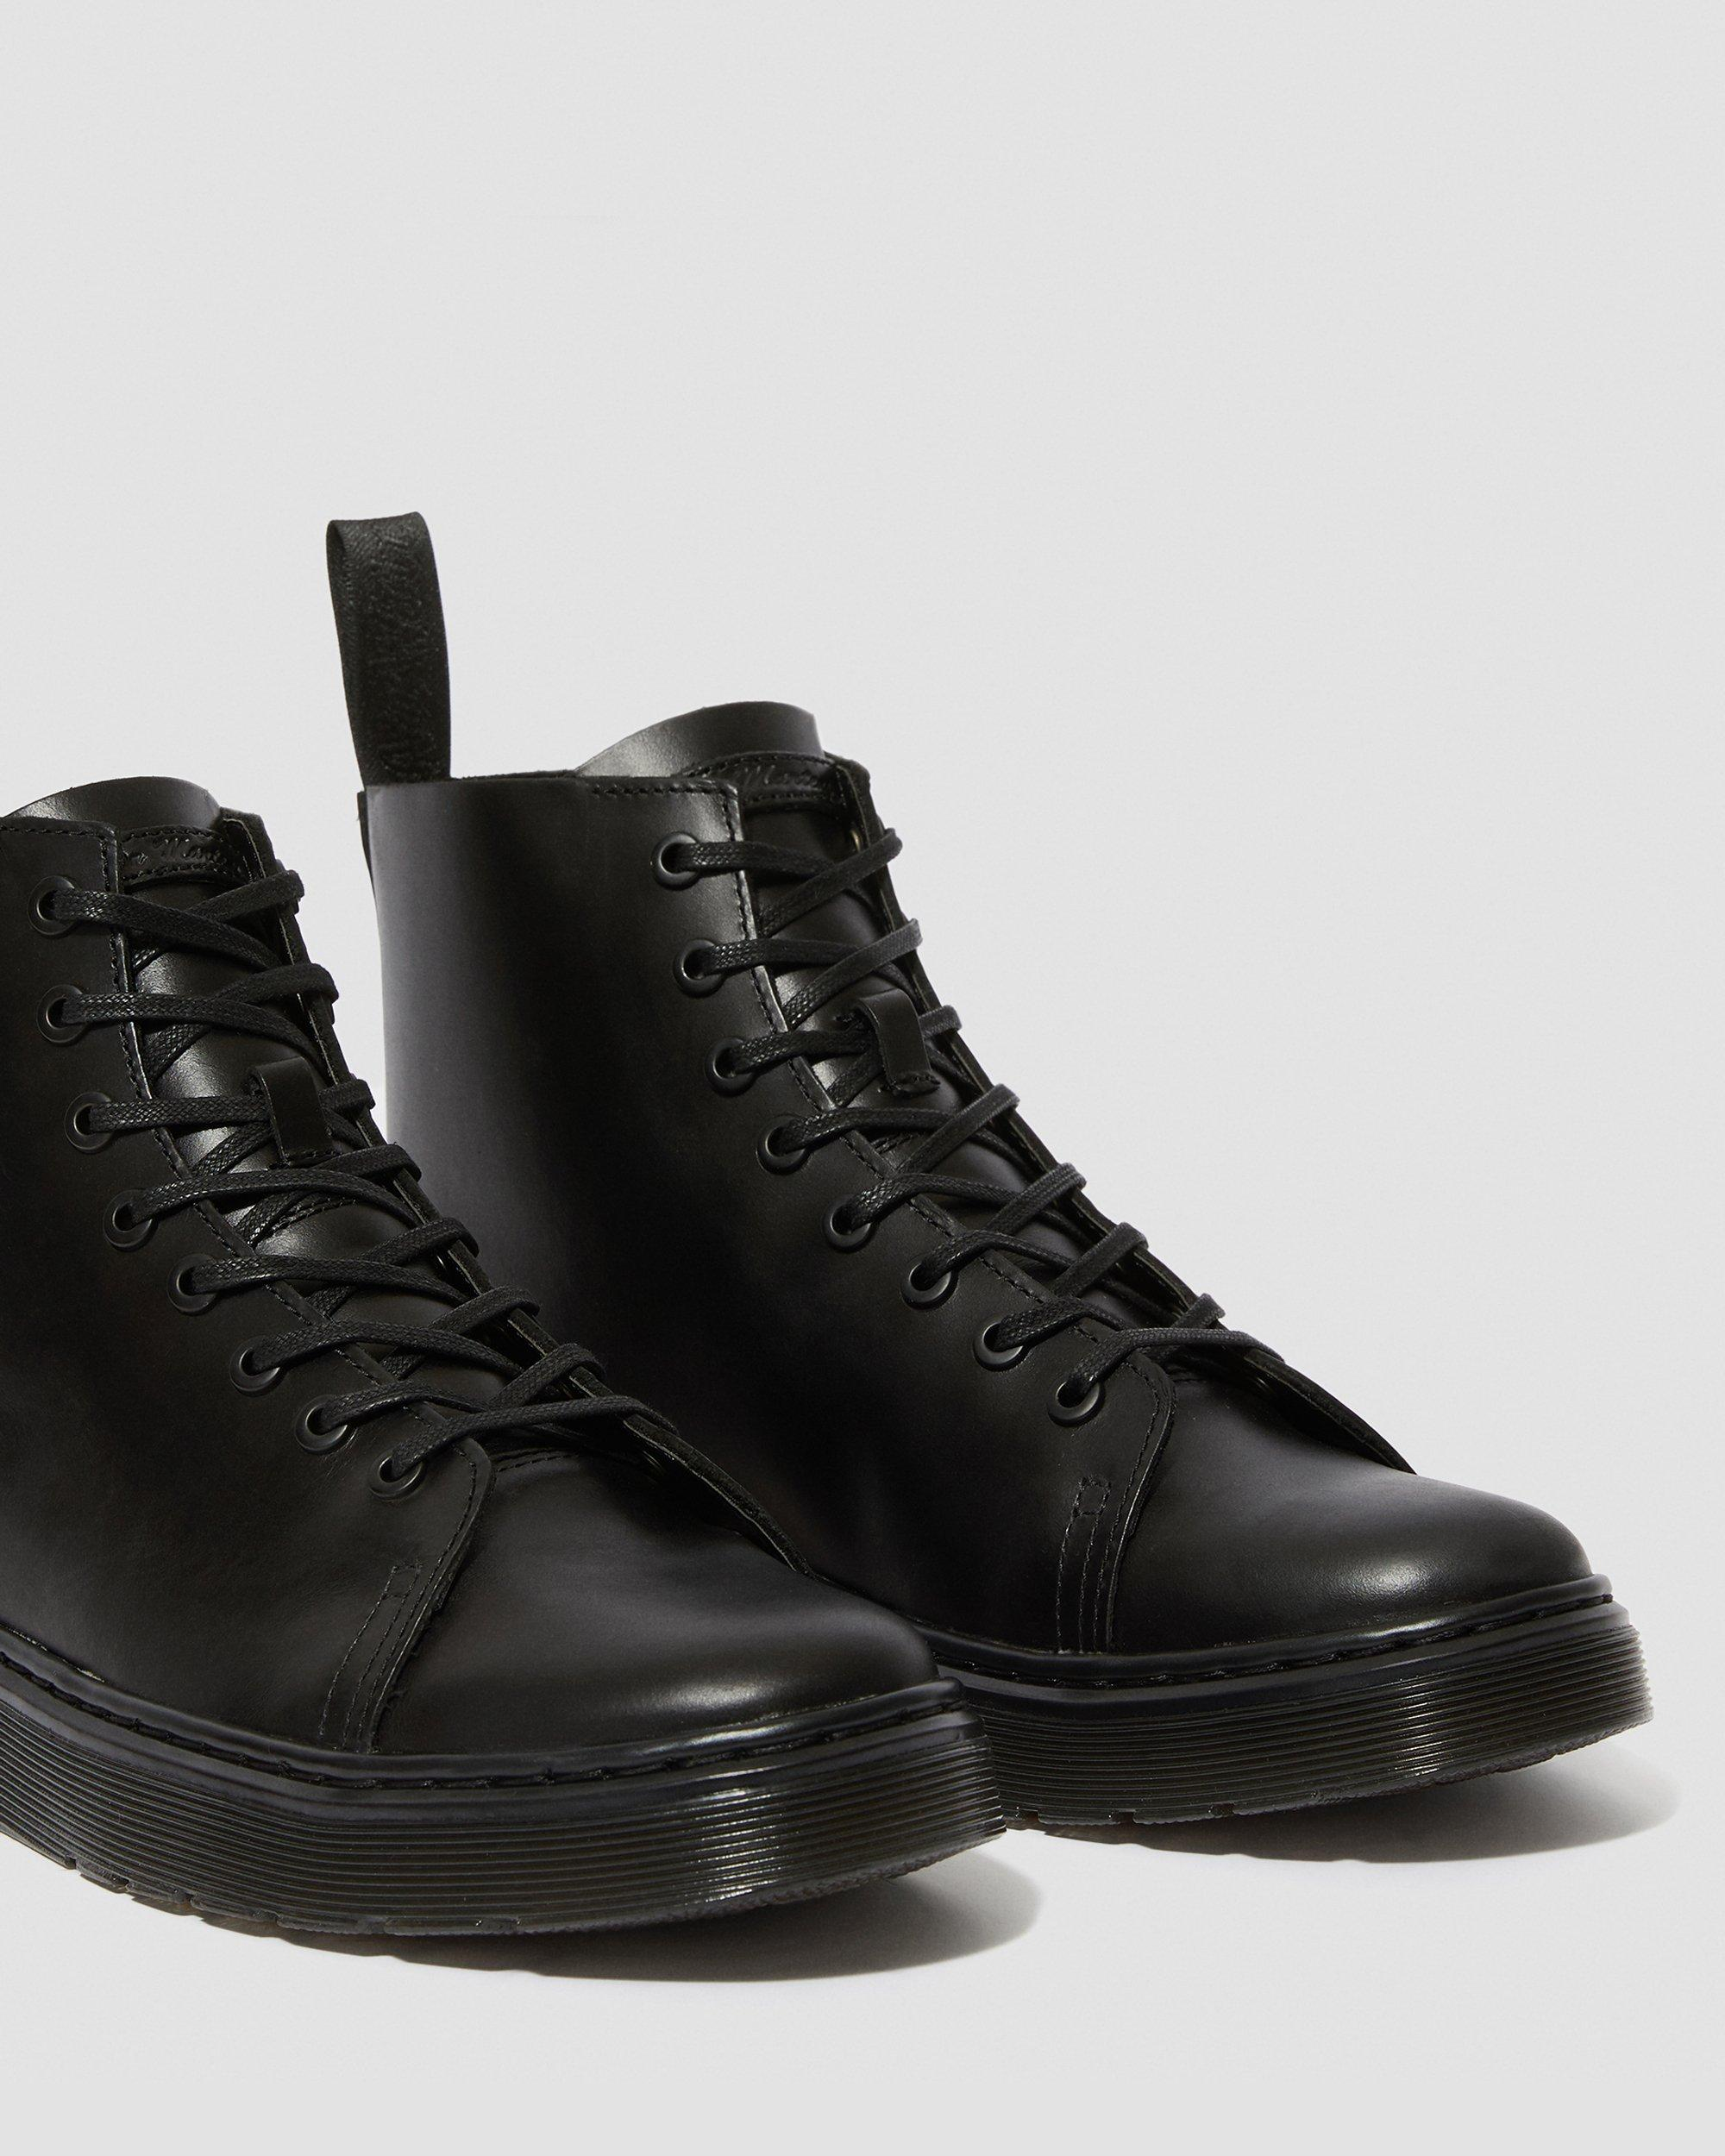 TALIB LEATHER LACE UP BOOTS | Dr